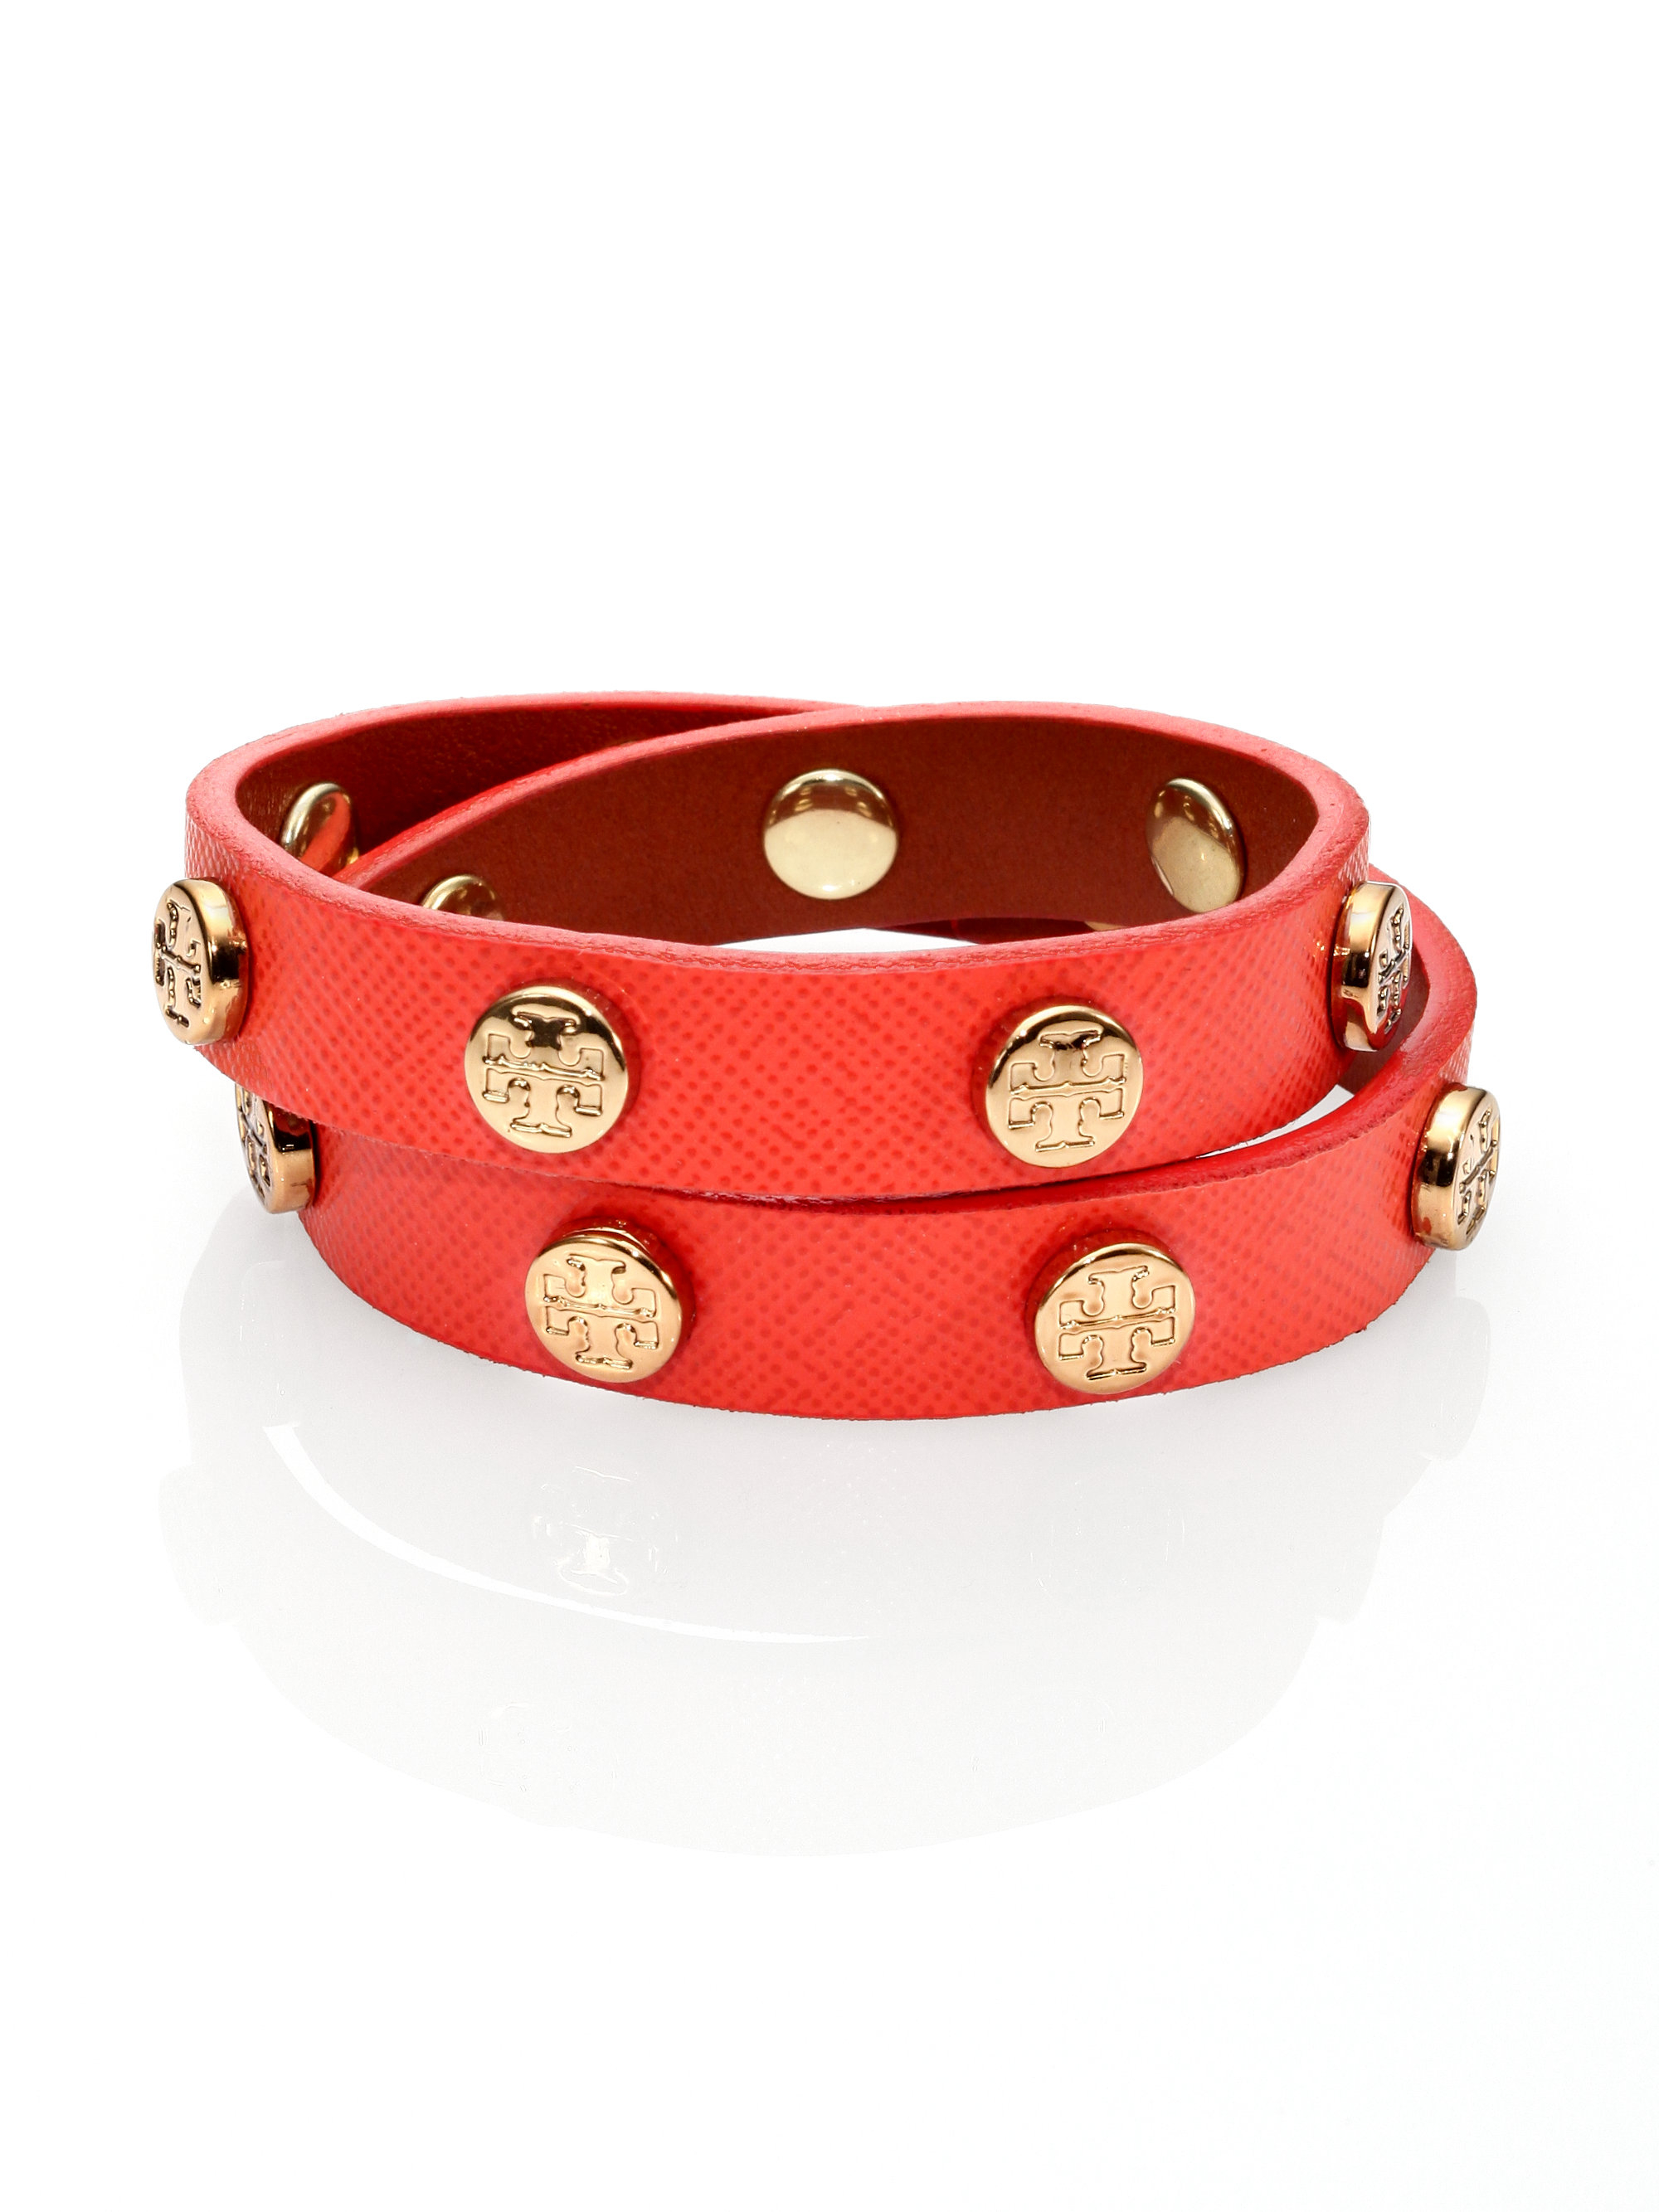 Tory Burch Women's Red Logo Stud Saffiano Leather Double-wrap Bracelet